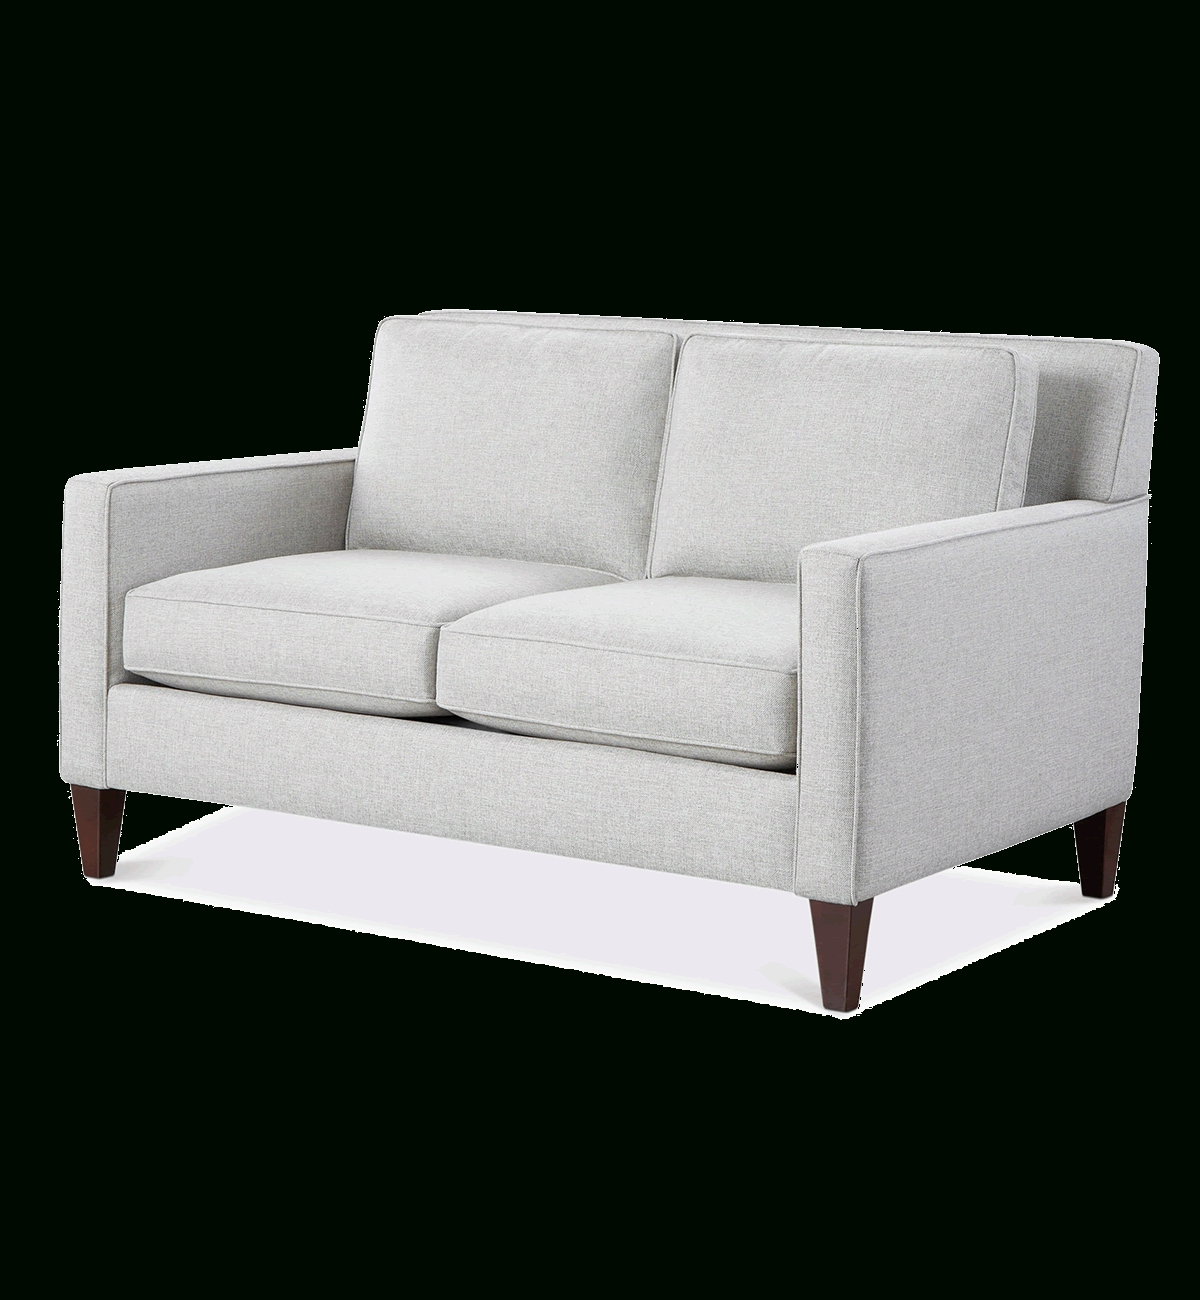 White Couches And Sofas – Macy's Intended For Latest White Sofa Chairs (View 13 of 15)